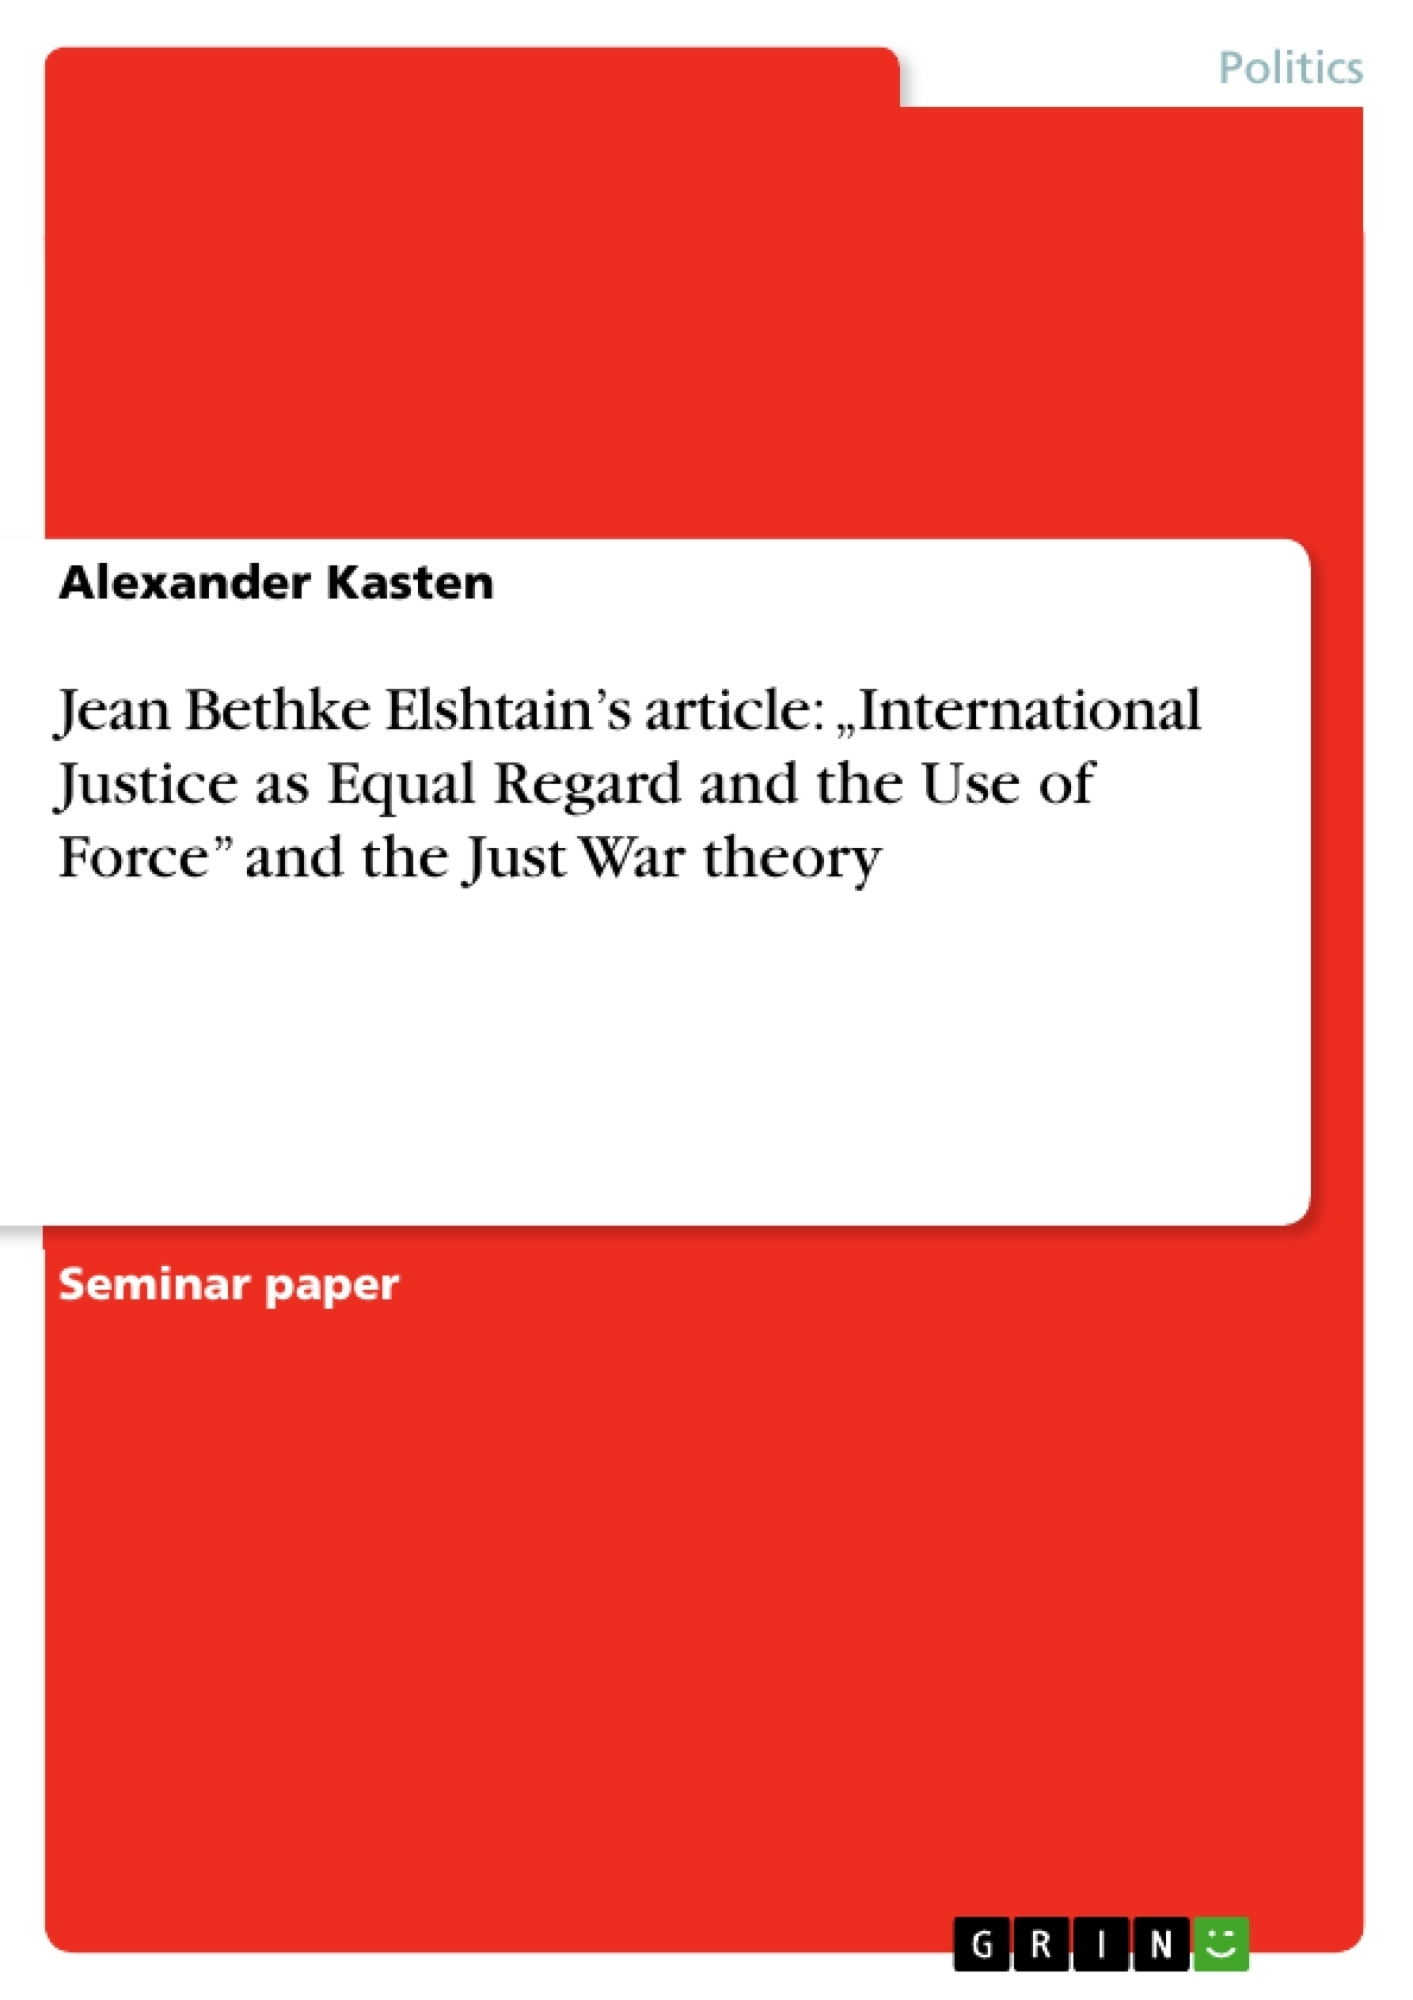 """Title: Jean Bethke Elshtain's article: """"International Justice as Equal Regard and the Use of Force"""" and the Just War theory"""